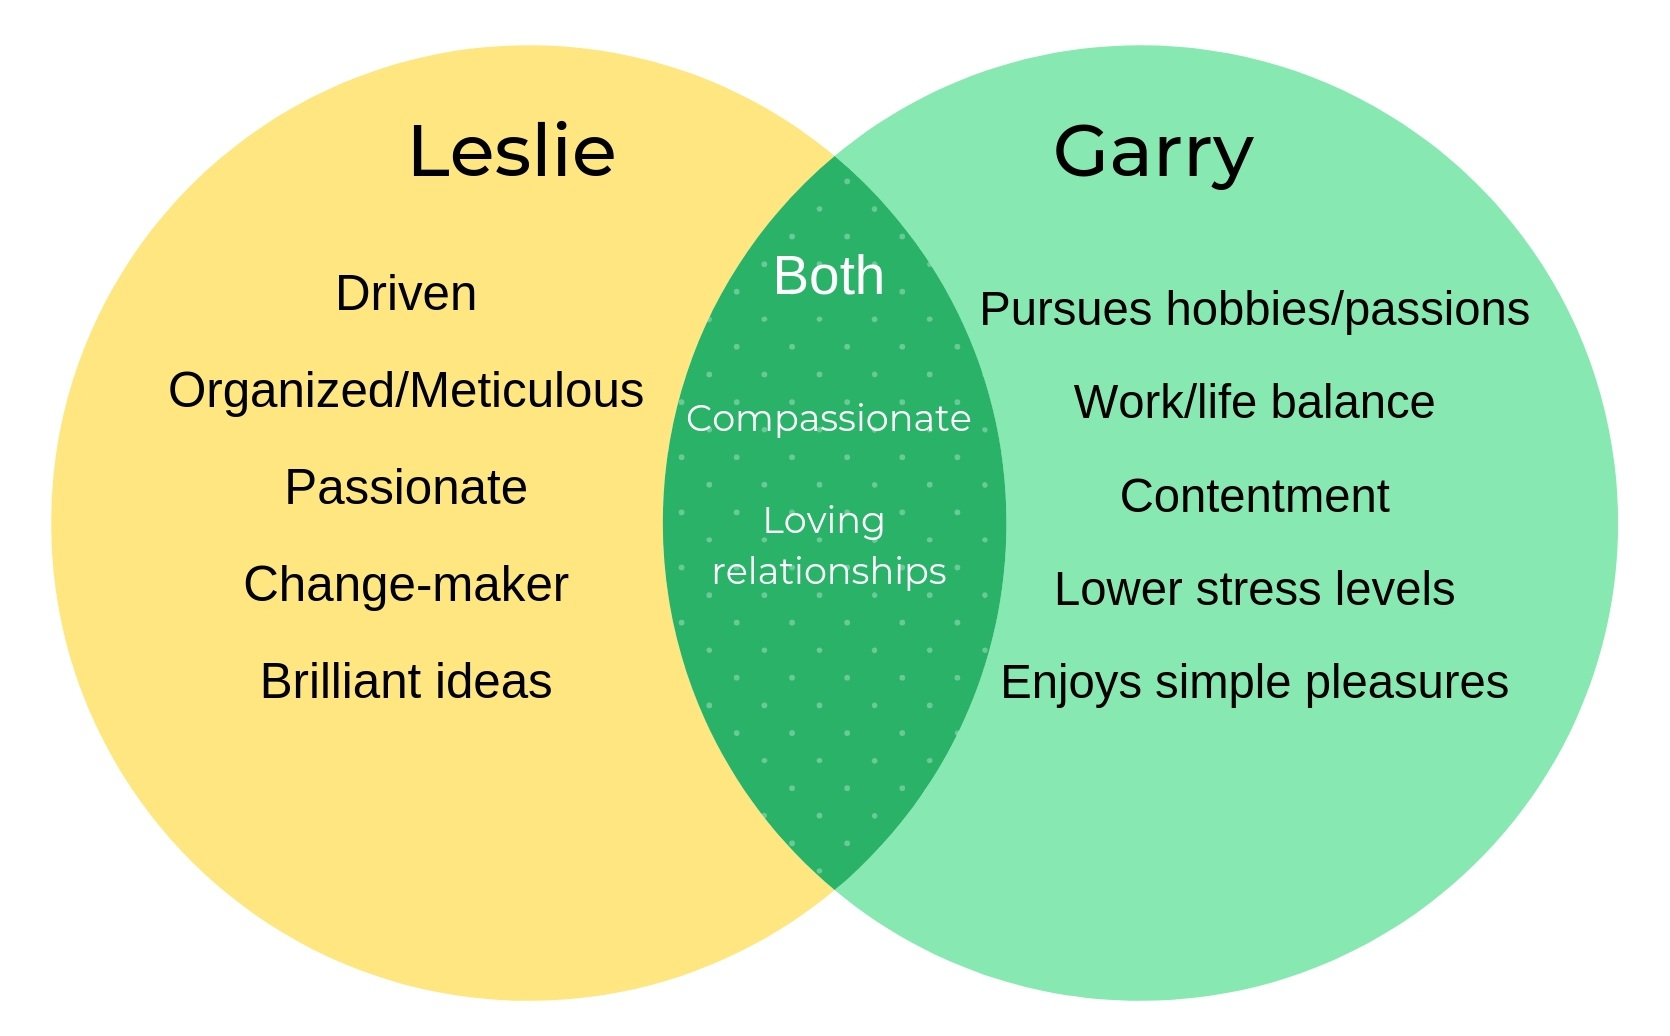 Leslie and Garry Venn Diagram